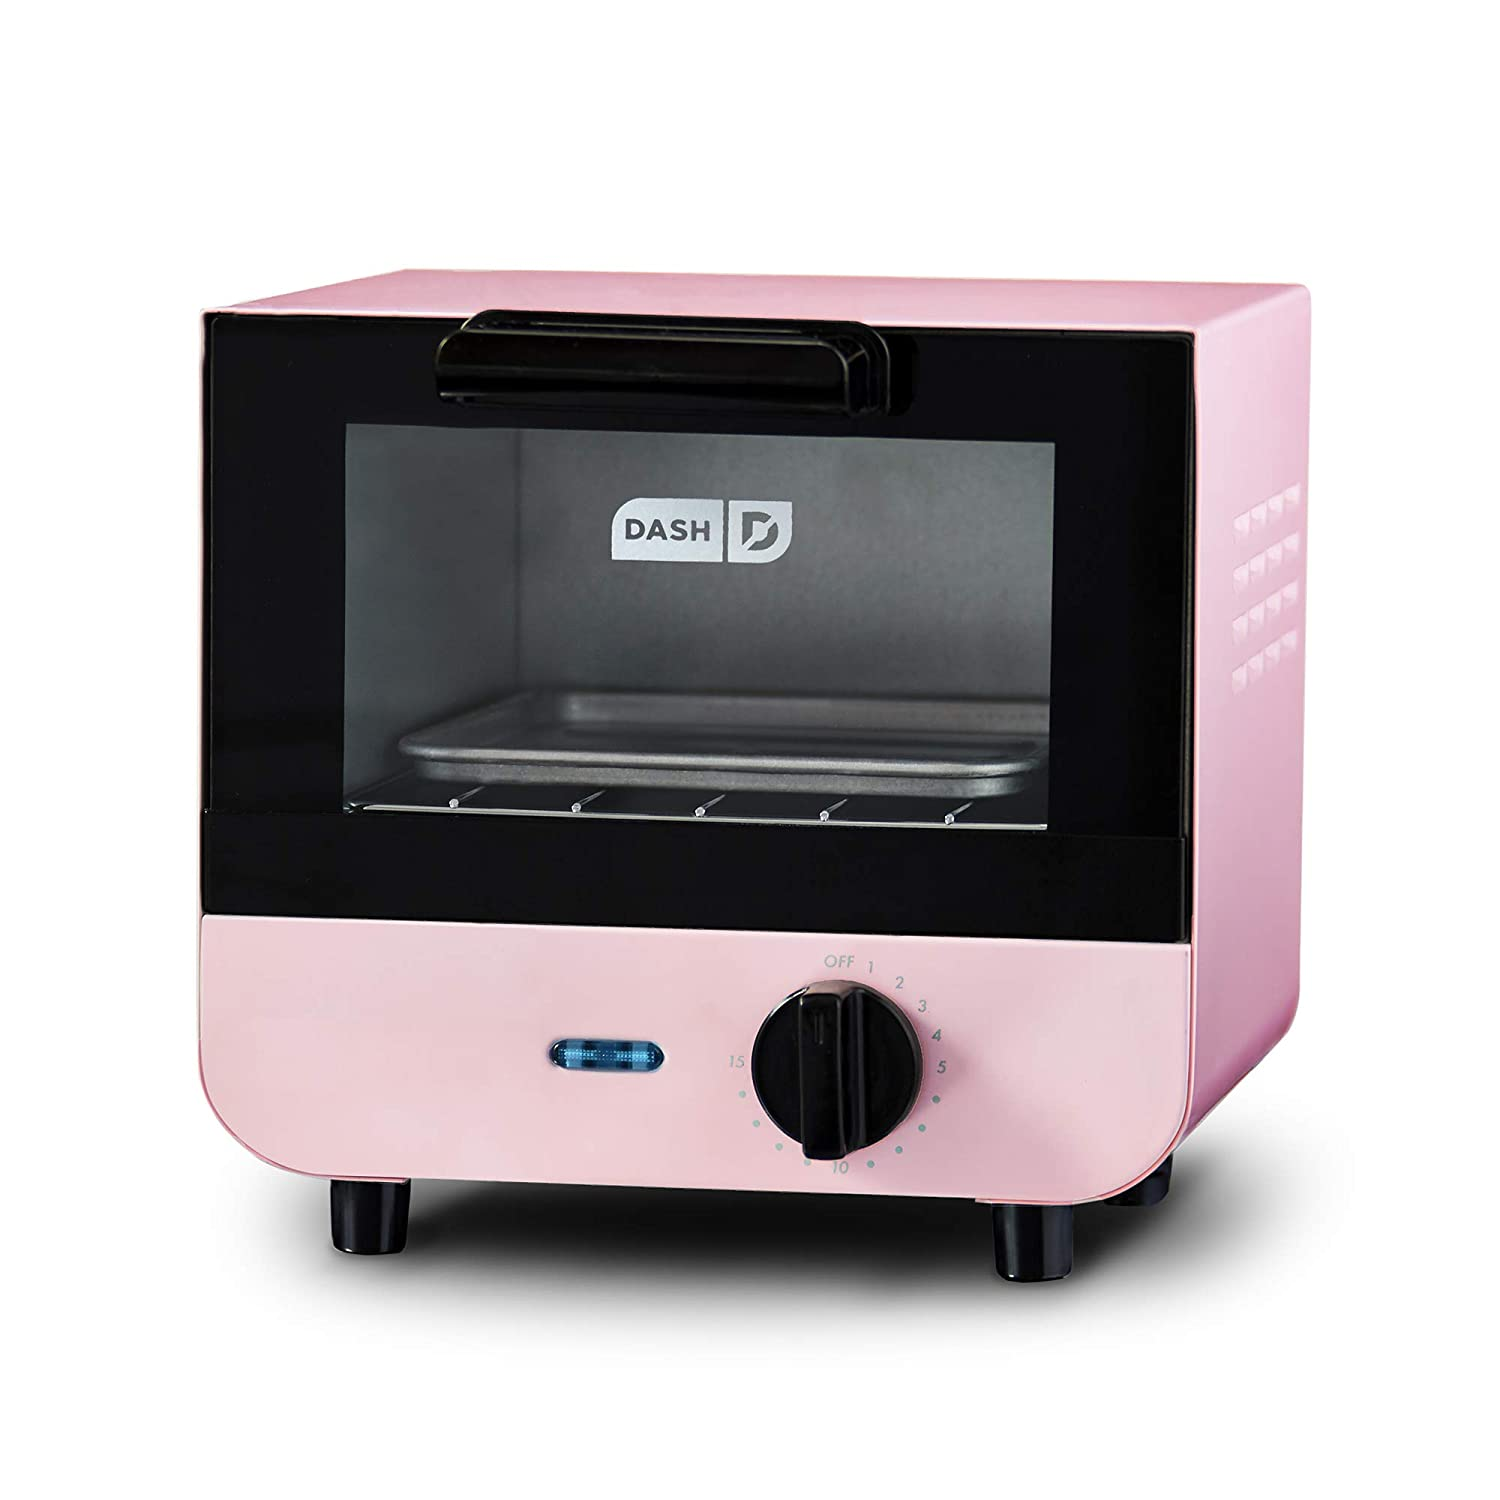 DASH DMTO100GBPK04 Mini Toaster Oven Cooker for Bread, Bagels, Cookies, Pizza, Paninis & More with Baking Tray, Rack + Auto Shut Off Feature Pink